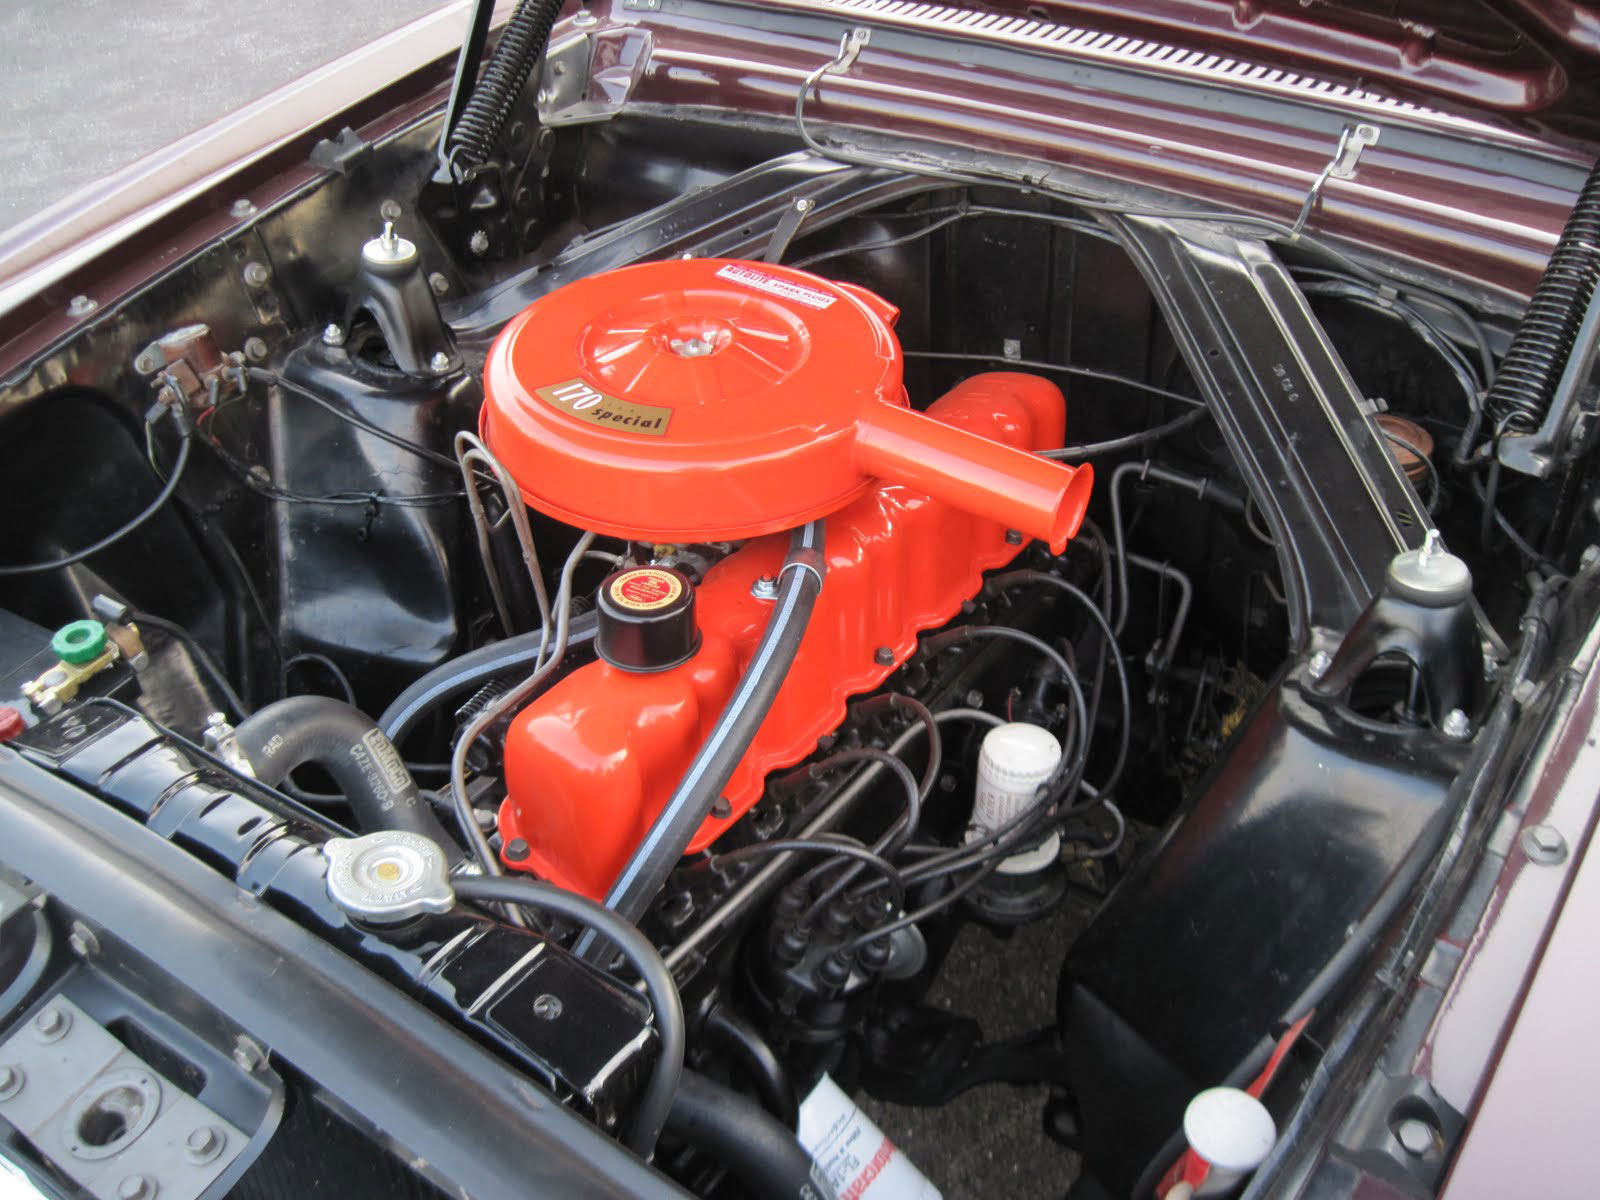 D C D Bd Low Res besides Ford Falcon Futura as well Maple Hill Restoration as well Ford Mustang Engine Bay in addition . on 63 ford falcon convertible